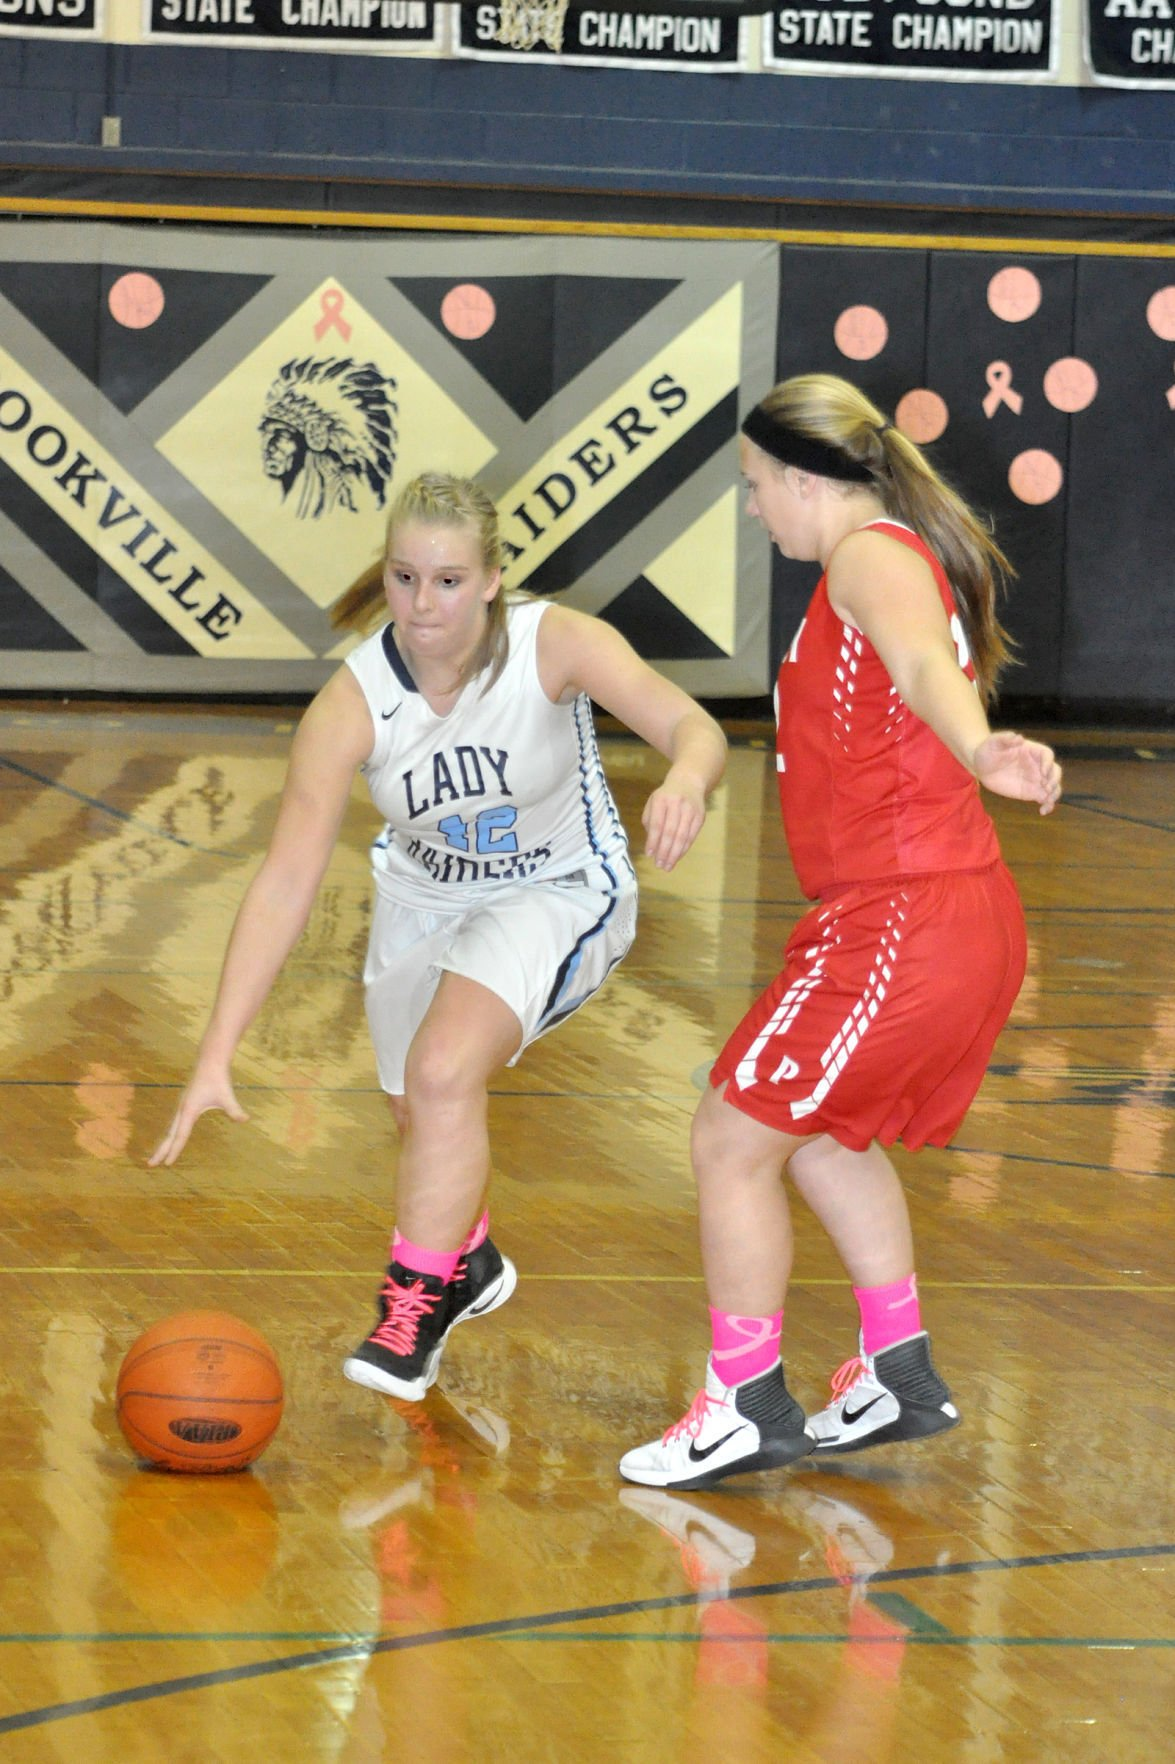 Kira Powell action file vs. Punxsutawney